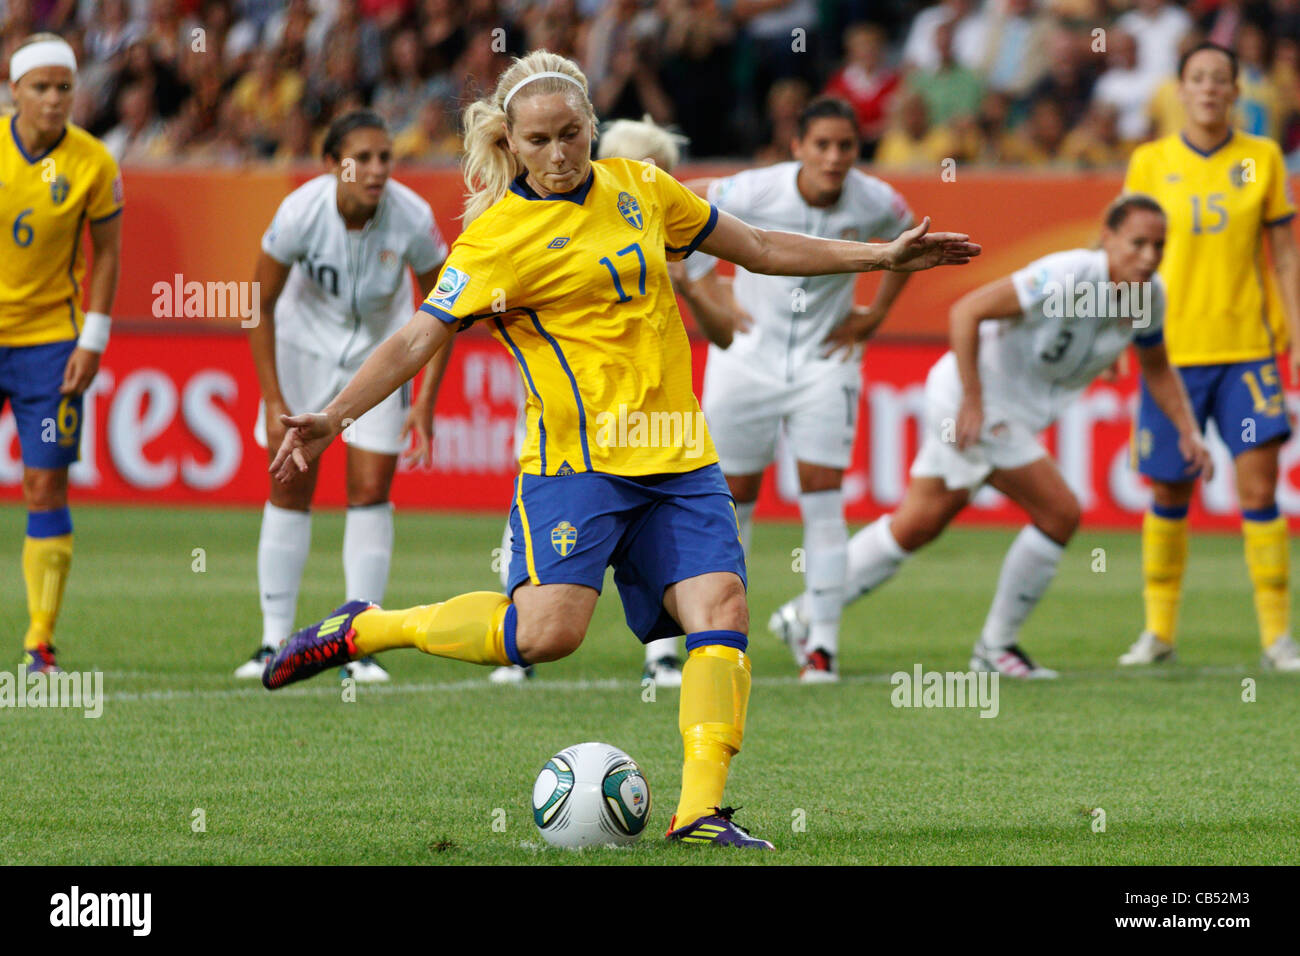 Lisa Dahlkvist of Sweden takes a penalty kick against the United States during a 2011 FIFA Women's World Cup - Stock Image